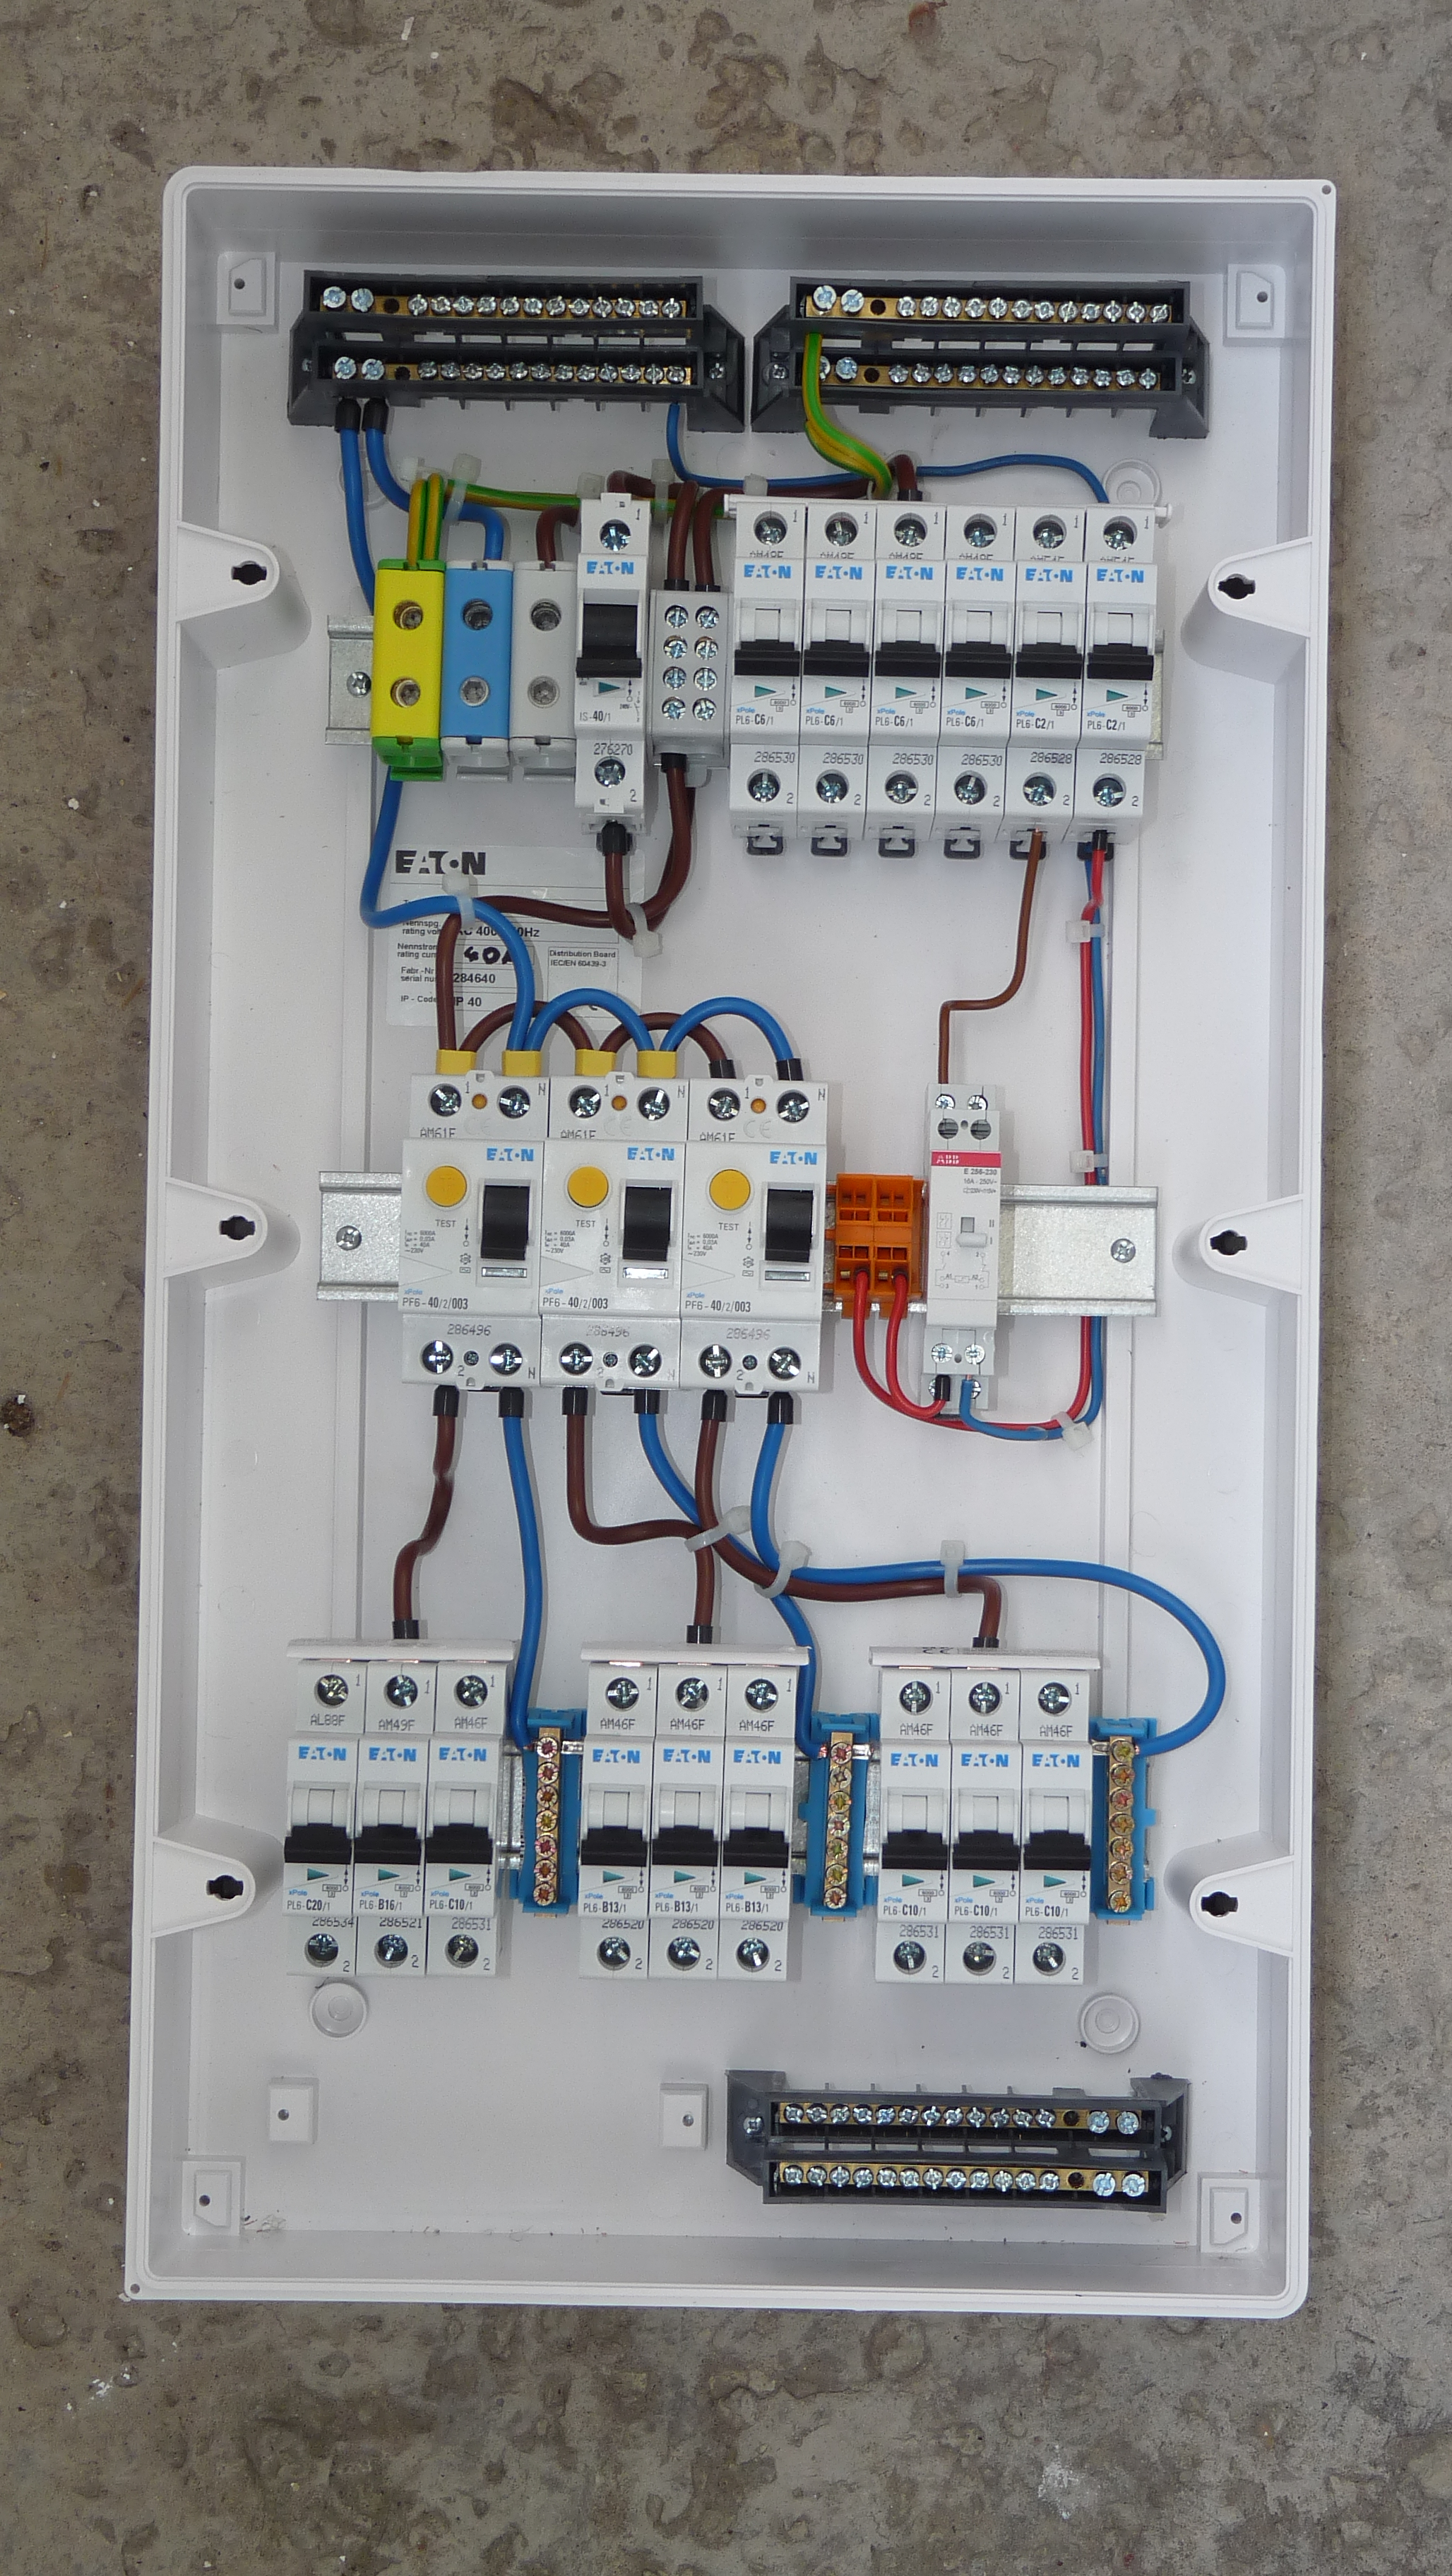 file paekaare 24 wiring diagram of apartment fuse box jpg rh commons wikimedia org